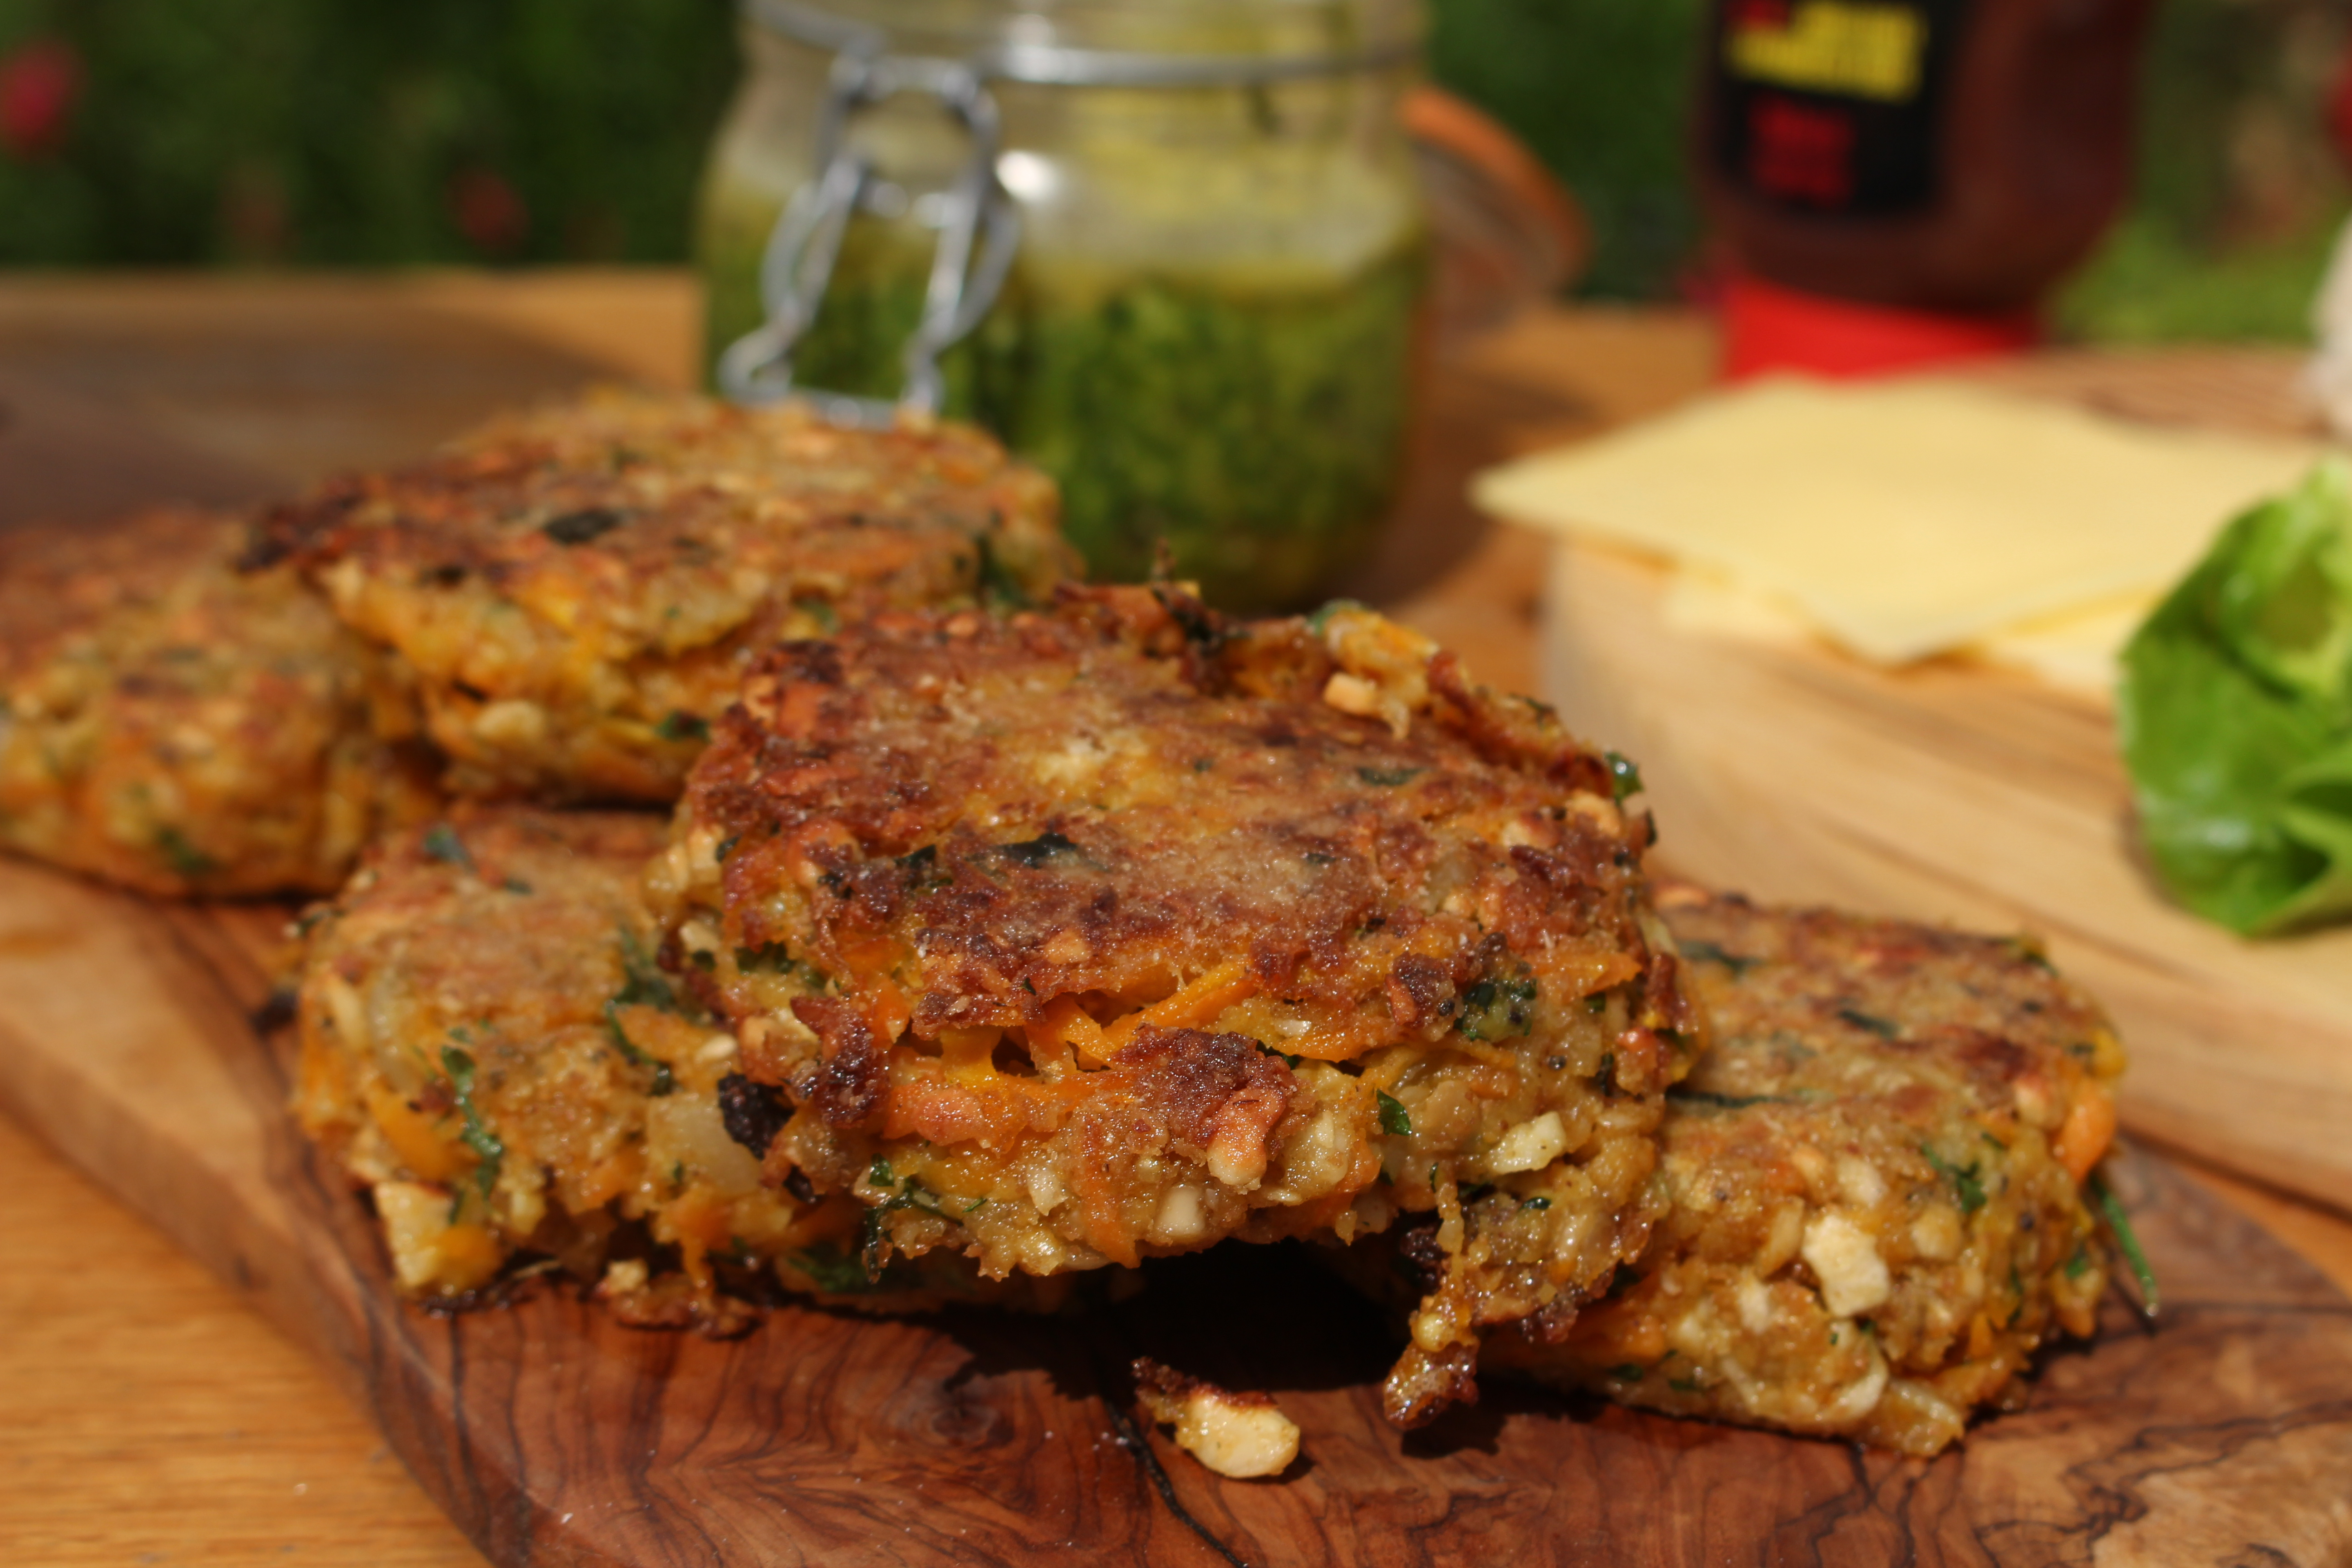 Ckickpea, Cougette & Carrot Burgers